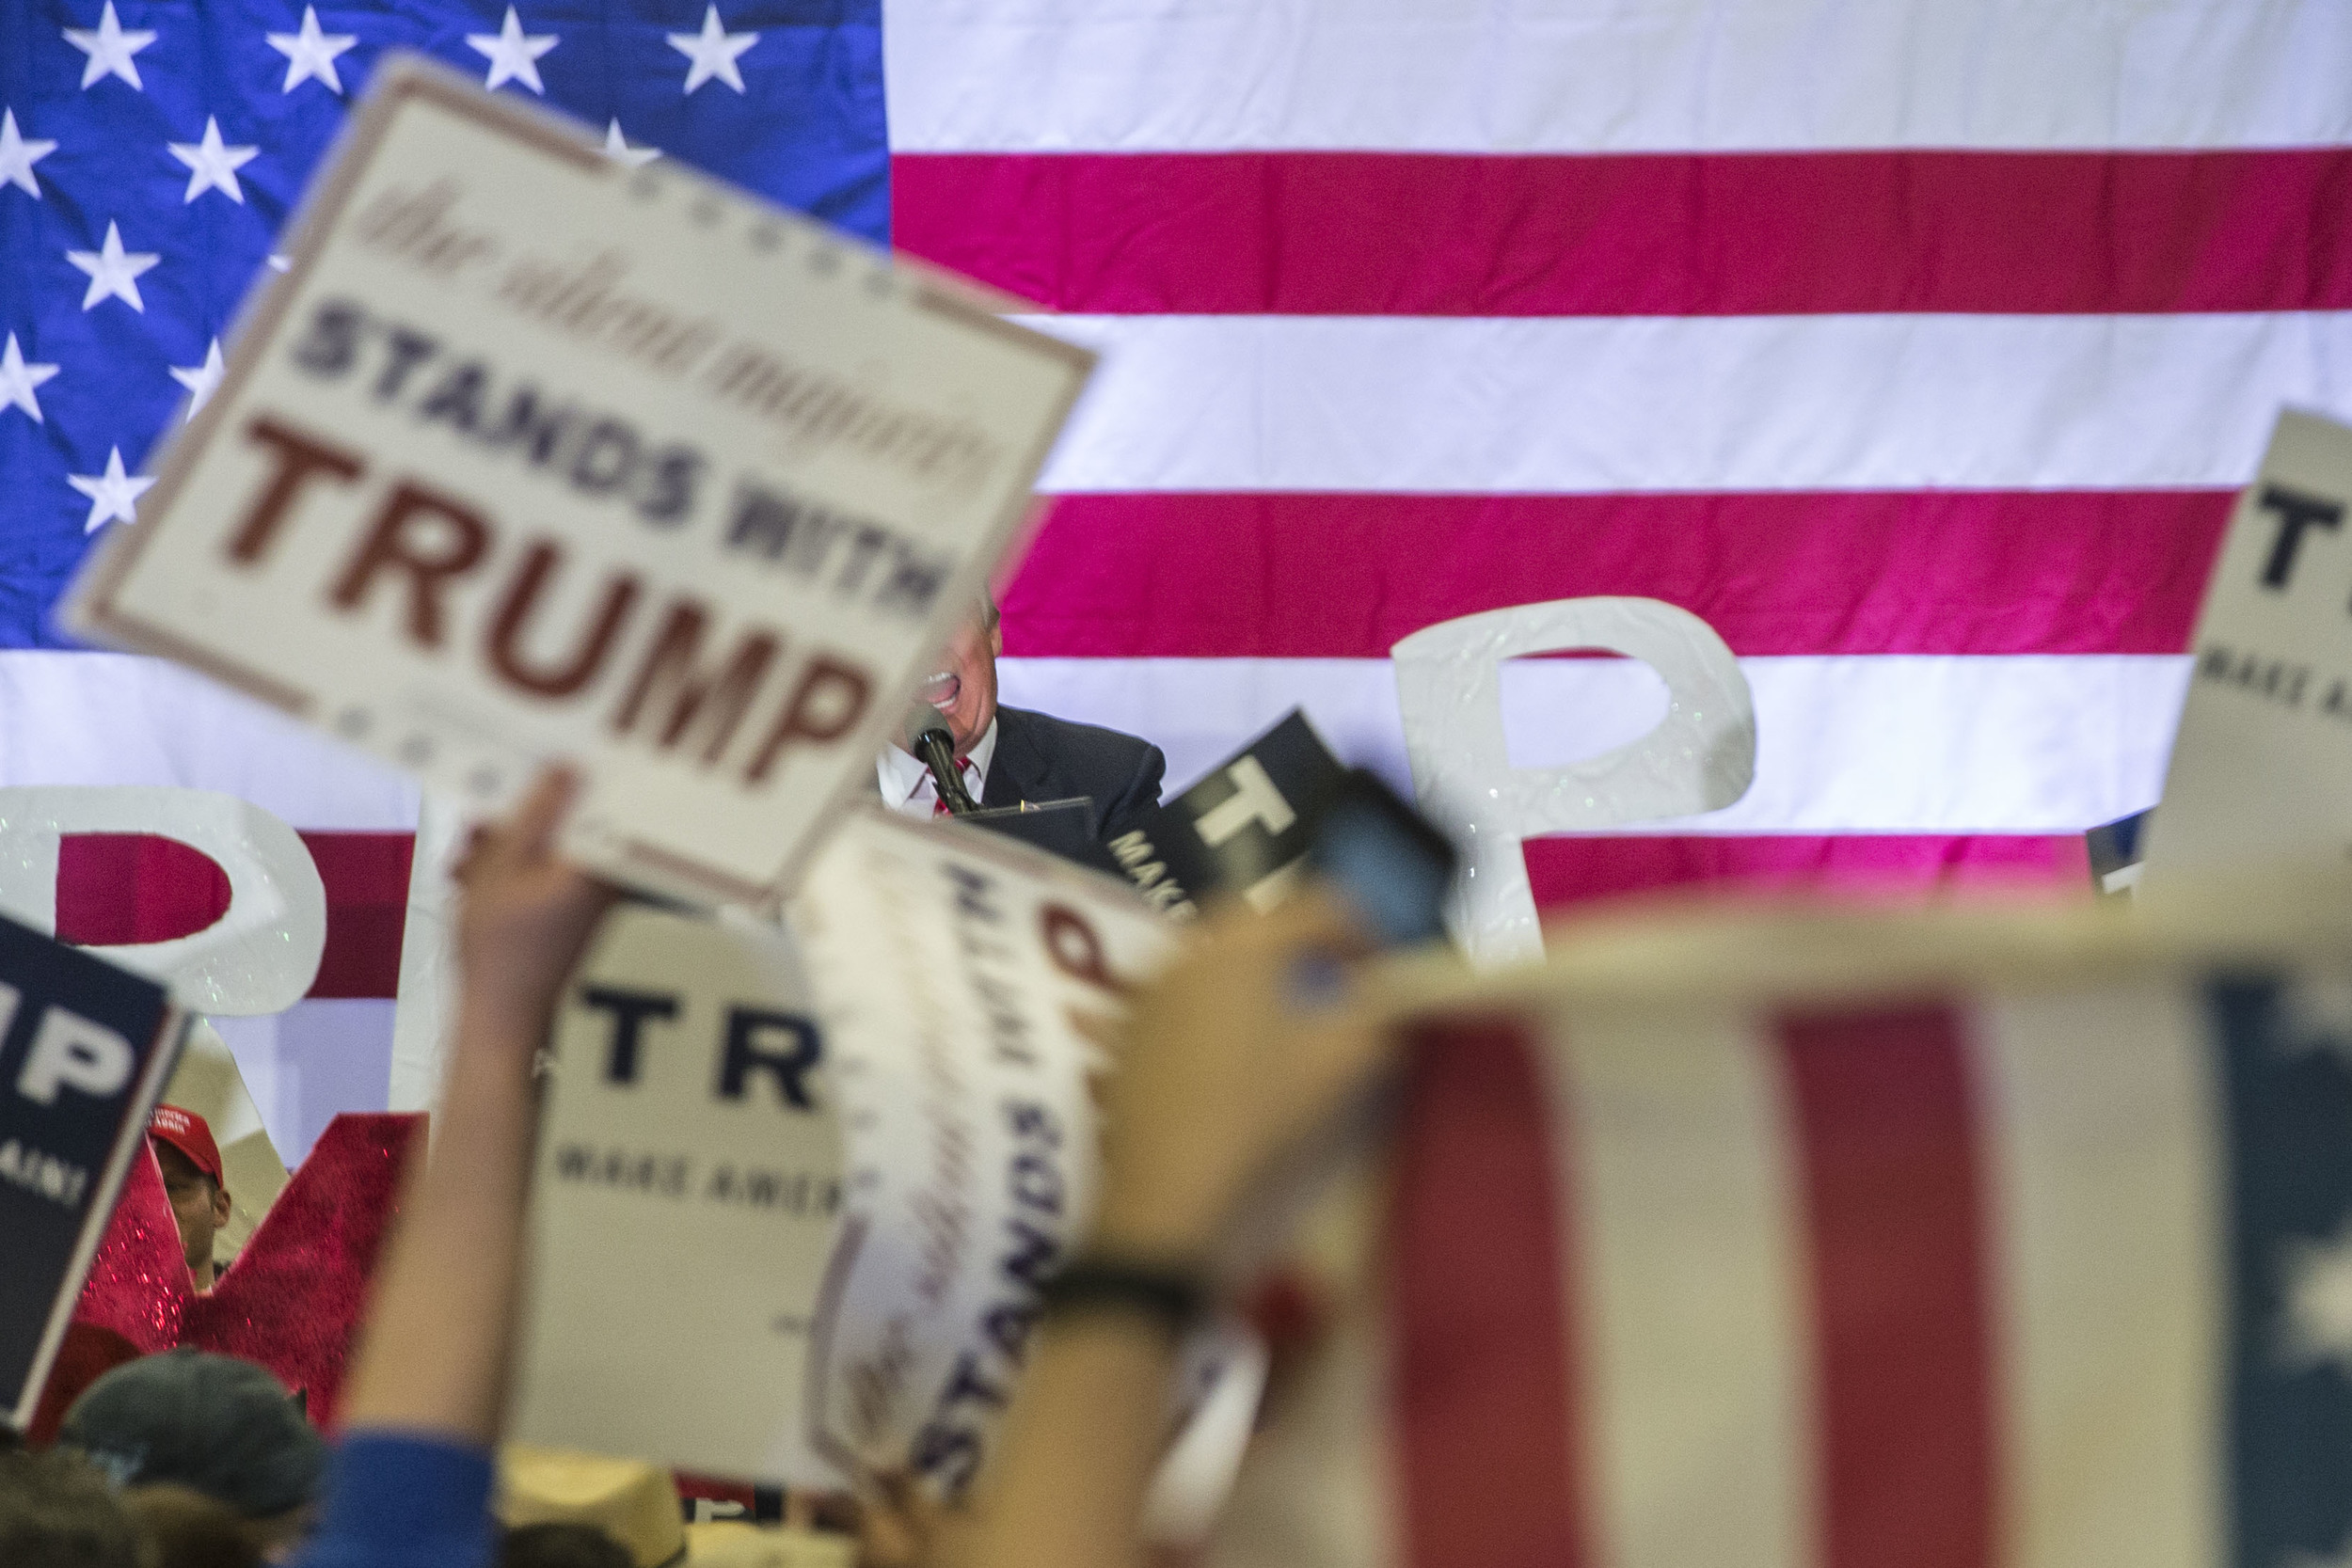 Donald Trump speaks at a rally in New Orleans